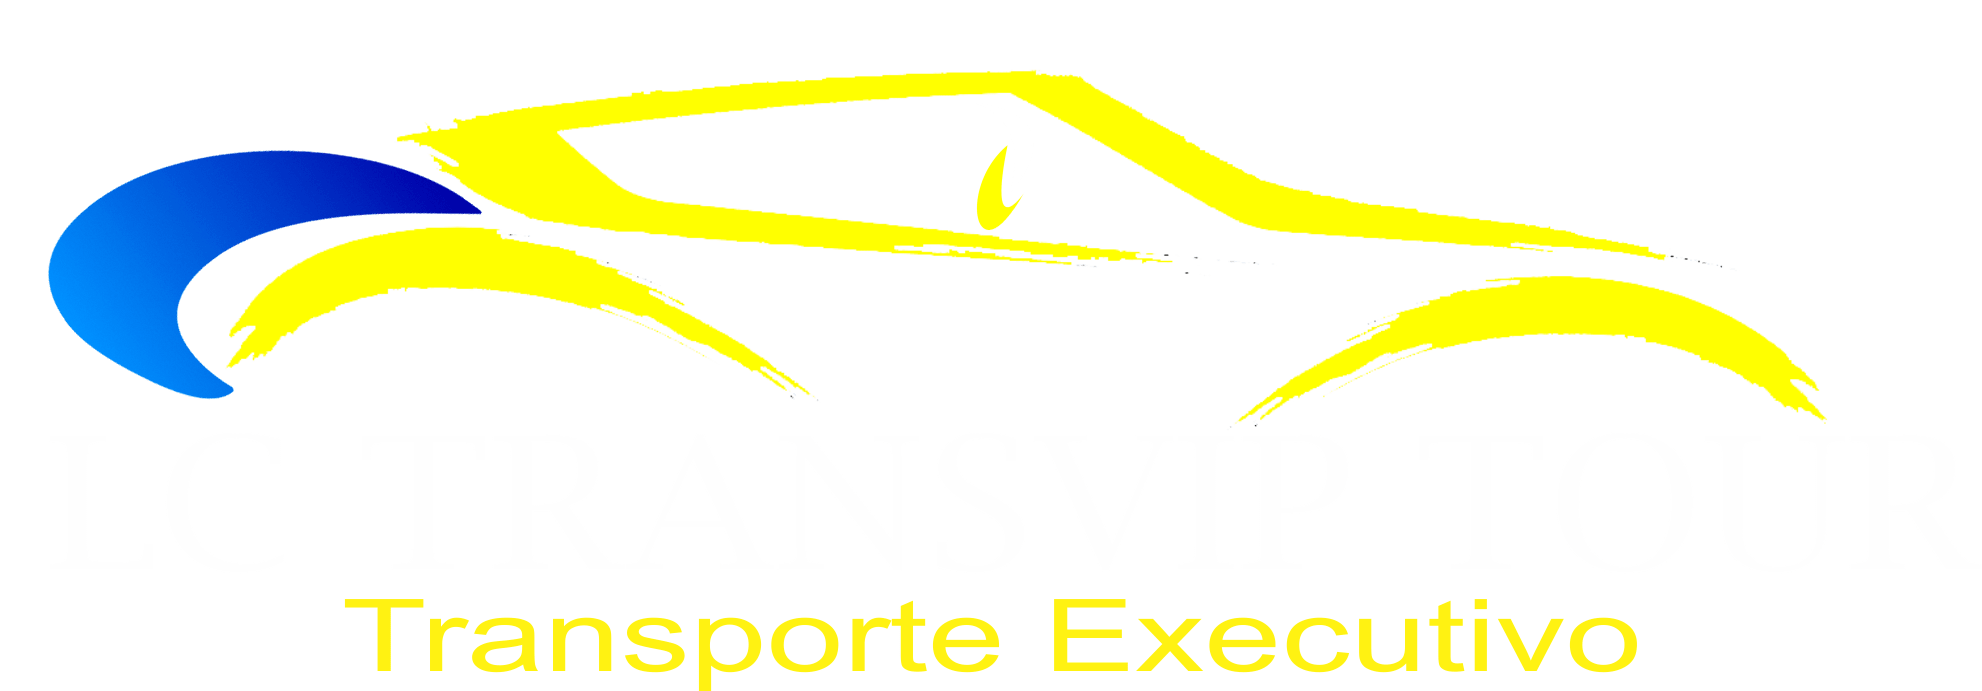 Transfer Executivo em Interlagos,Empresa de Transfer Executivo em Interlagos,Transfer Executivo em Interlagos Urgente,Transfer Executivo em Interlagos em São Paulo,Transfer Executivo em Interlagos SP,Orçamento de Transfer Executivo em Interlagos,LC Transvip Tour